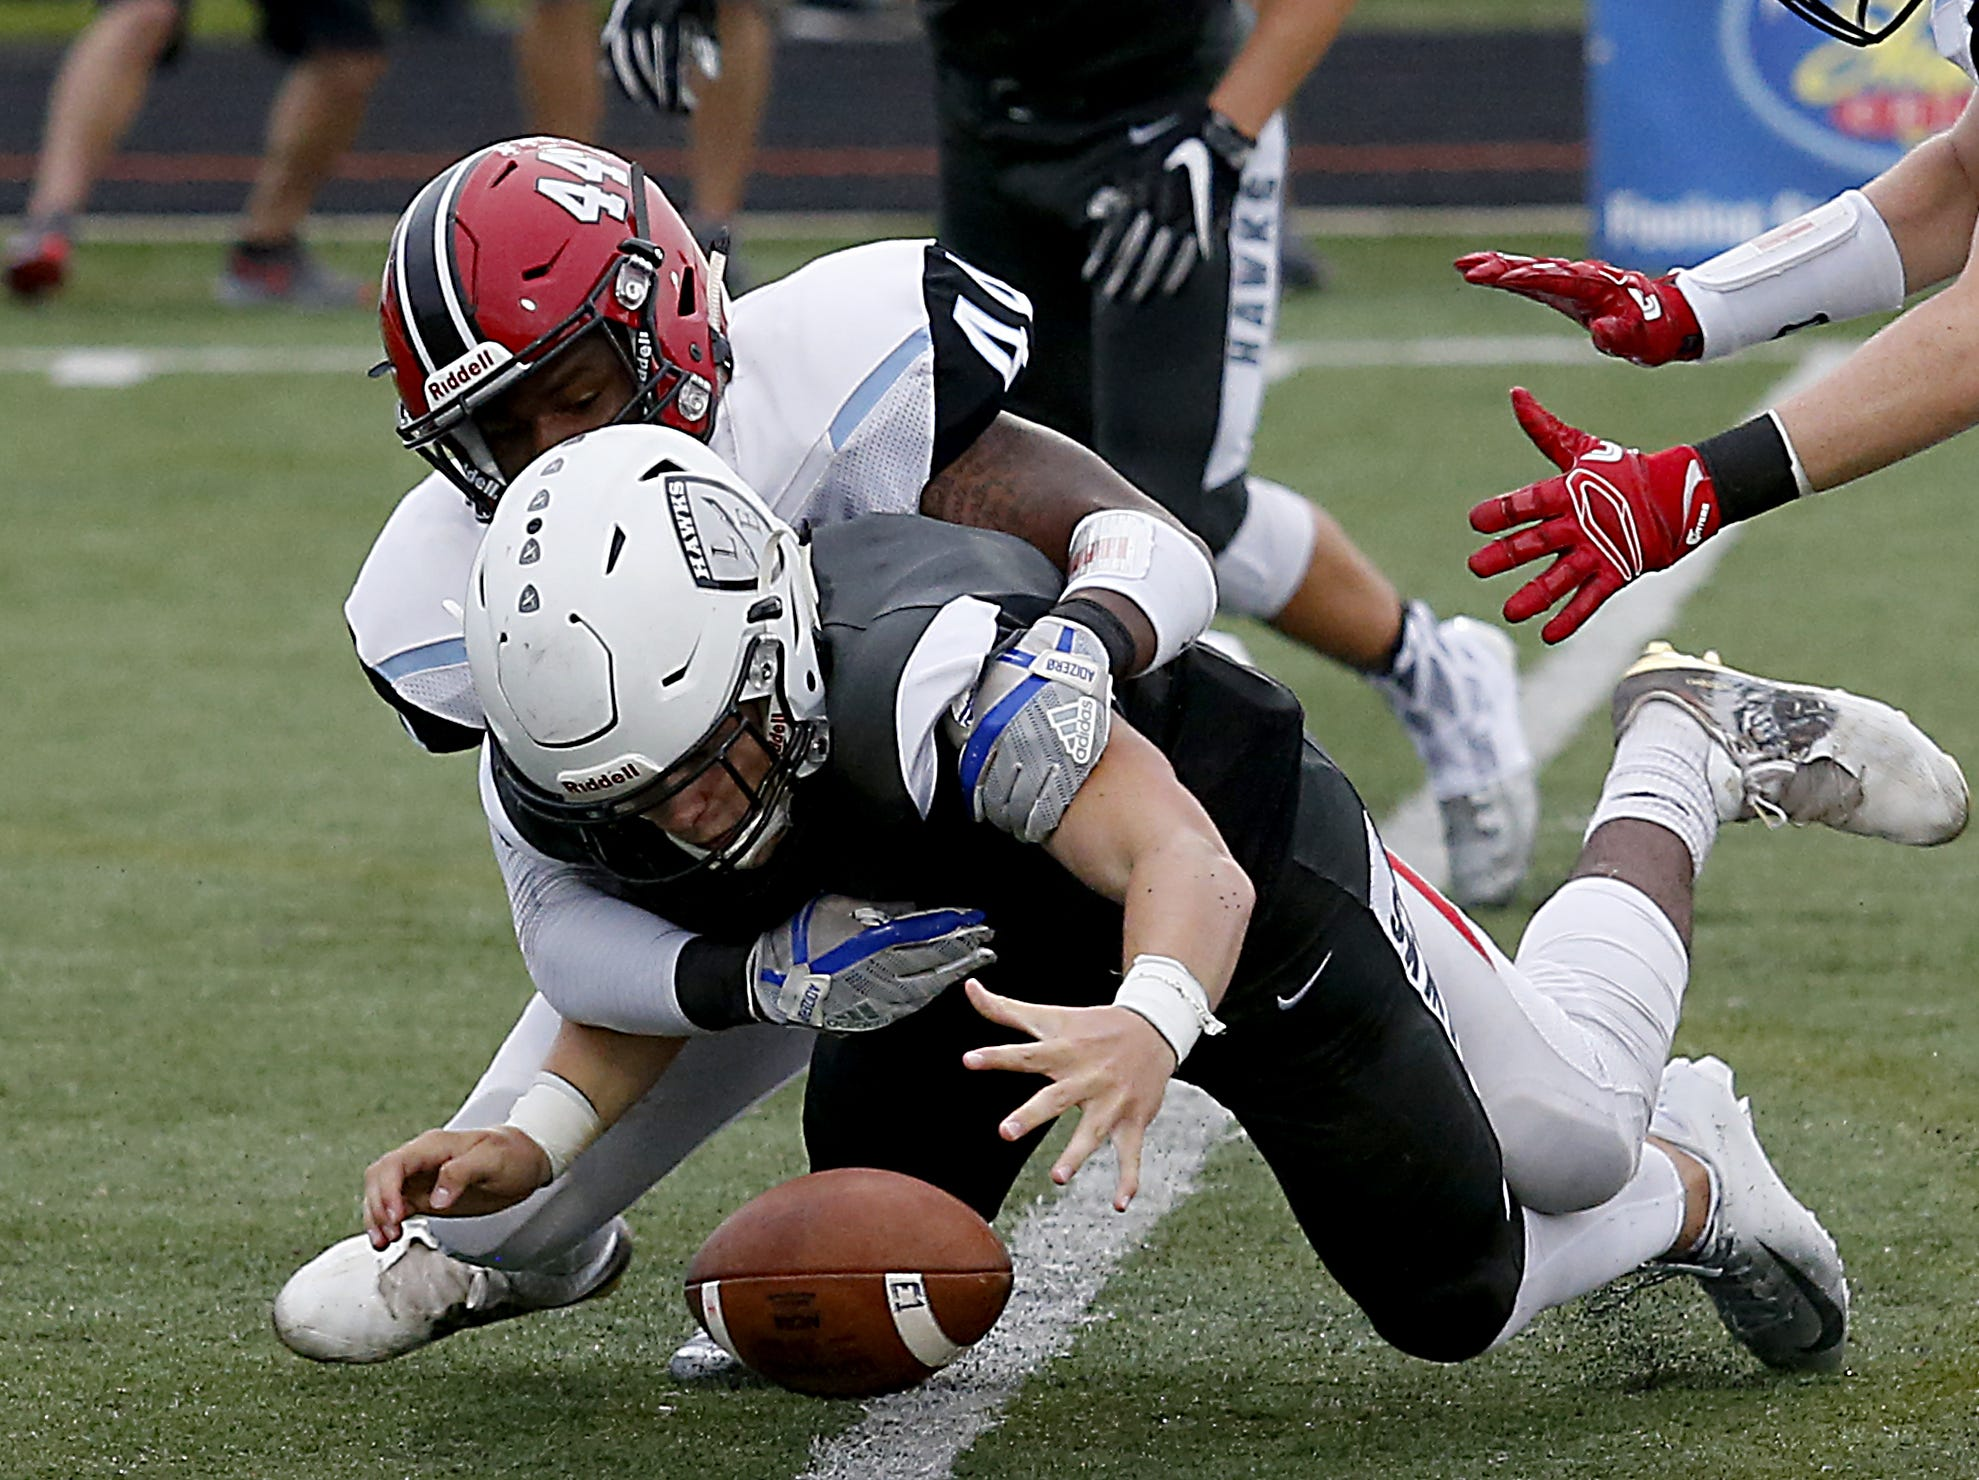 Lakota East quarterback Sean Church manages to fall on his fumble after a hit from Kings linebacker Treshawn Fisher during their Skyline Chili Crosstown Showdown game at Lakota East Friday, August 31, 2018.